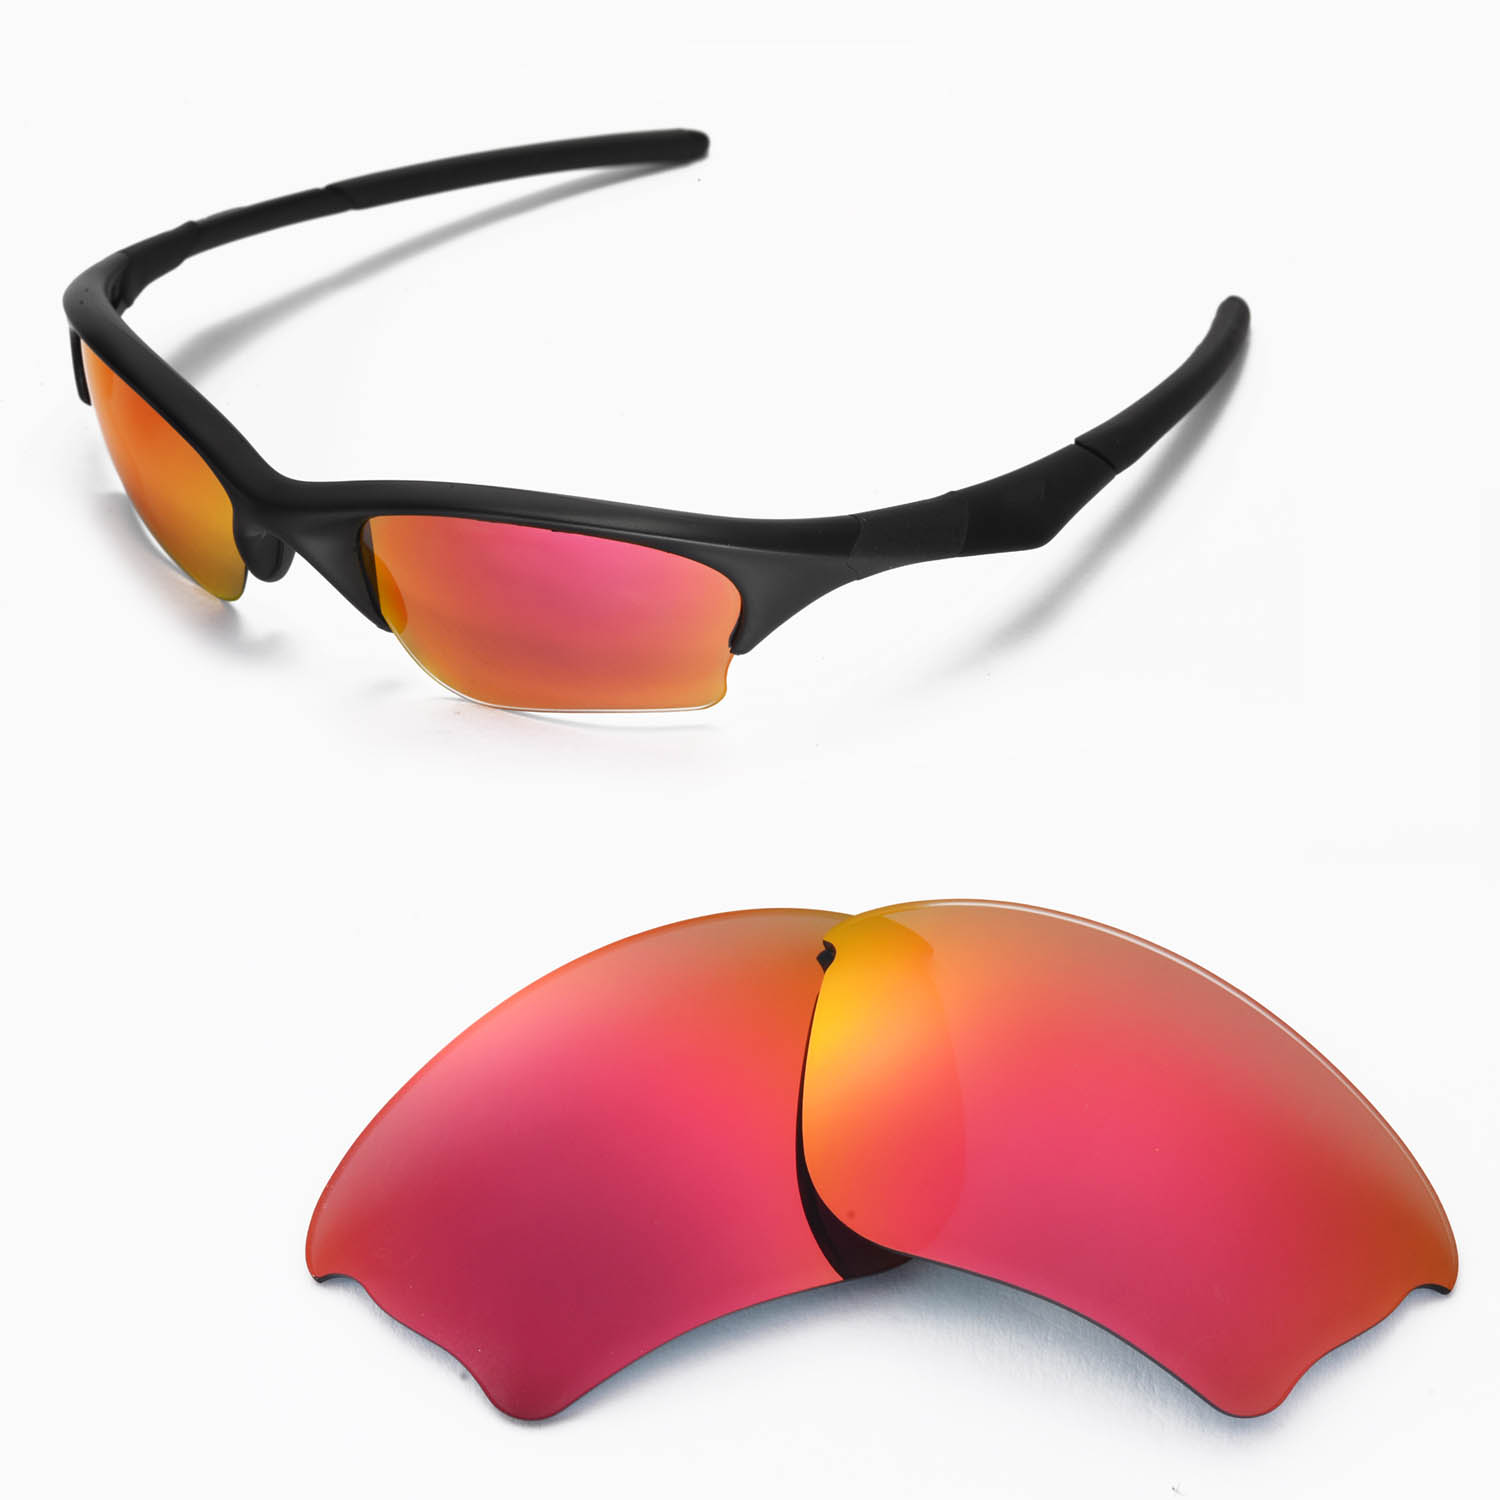 43e3e771c37 Details about New Walleva Fire Red Replacement Lenses For Oakley Half  Jacket XLJ Sunglasses